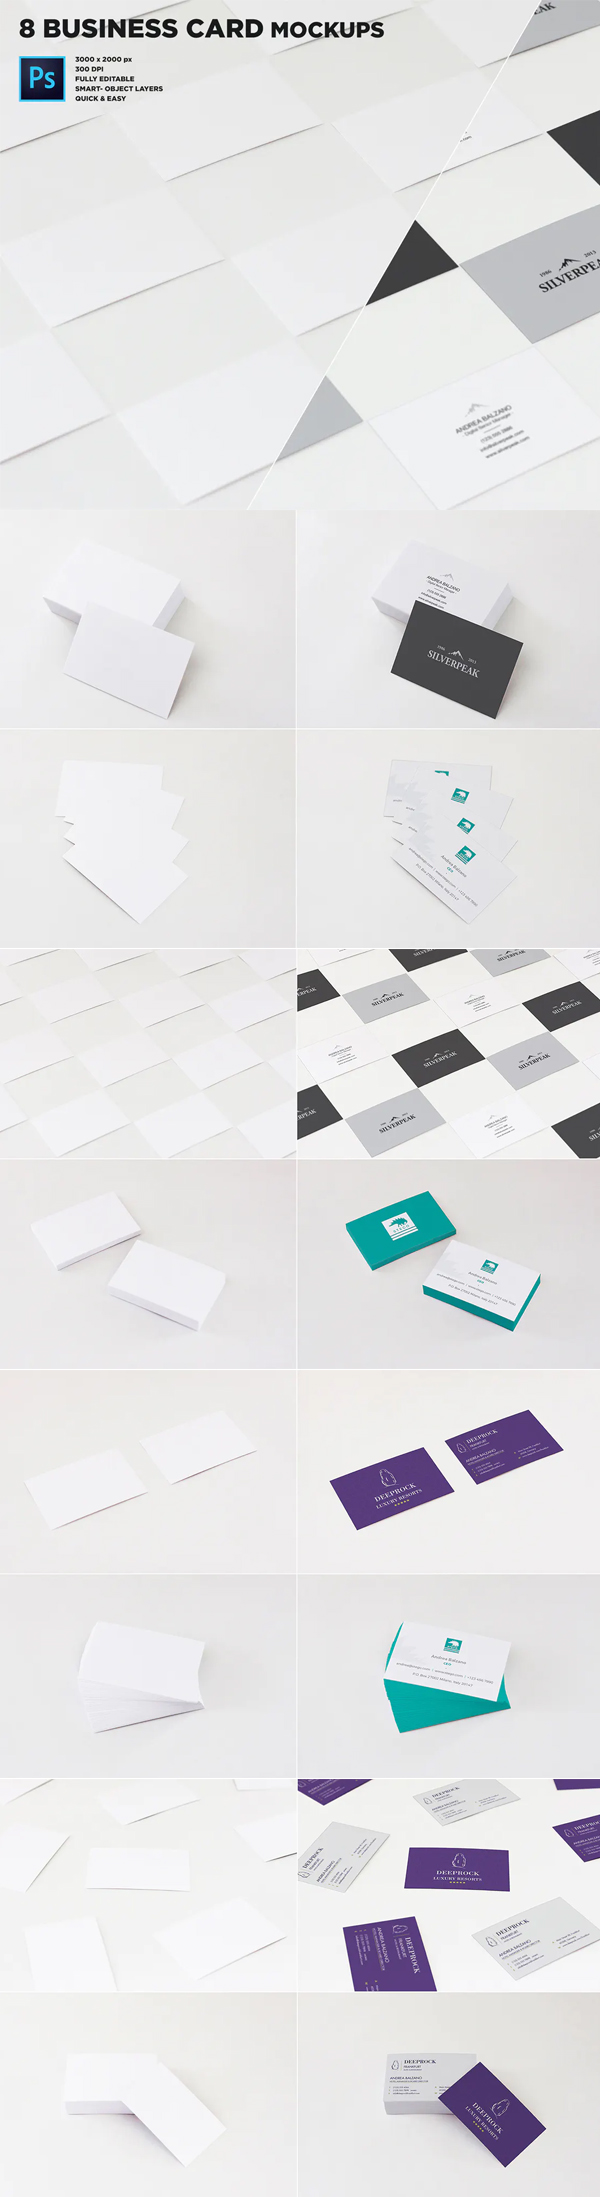 Real Photo Business Card Mockups